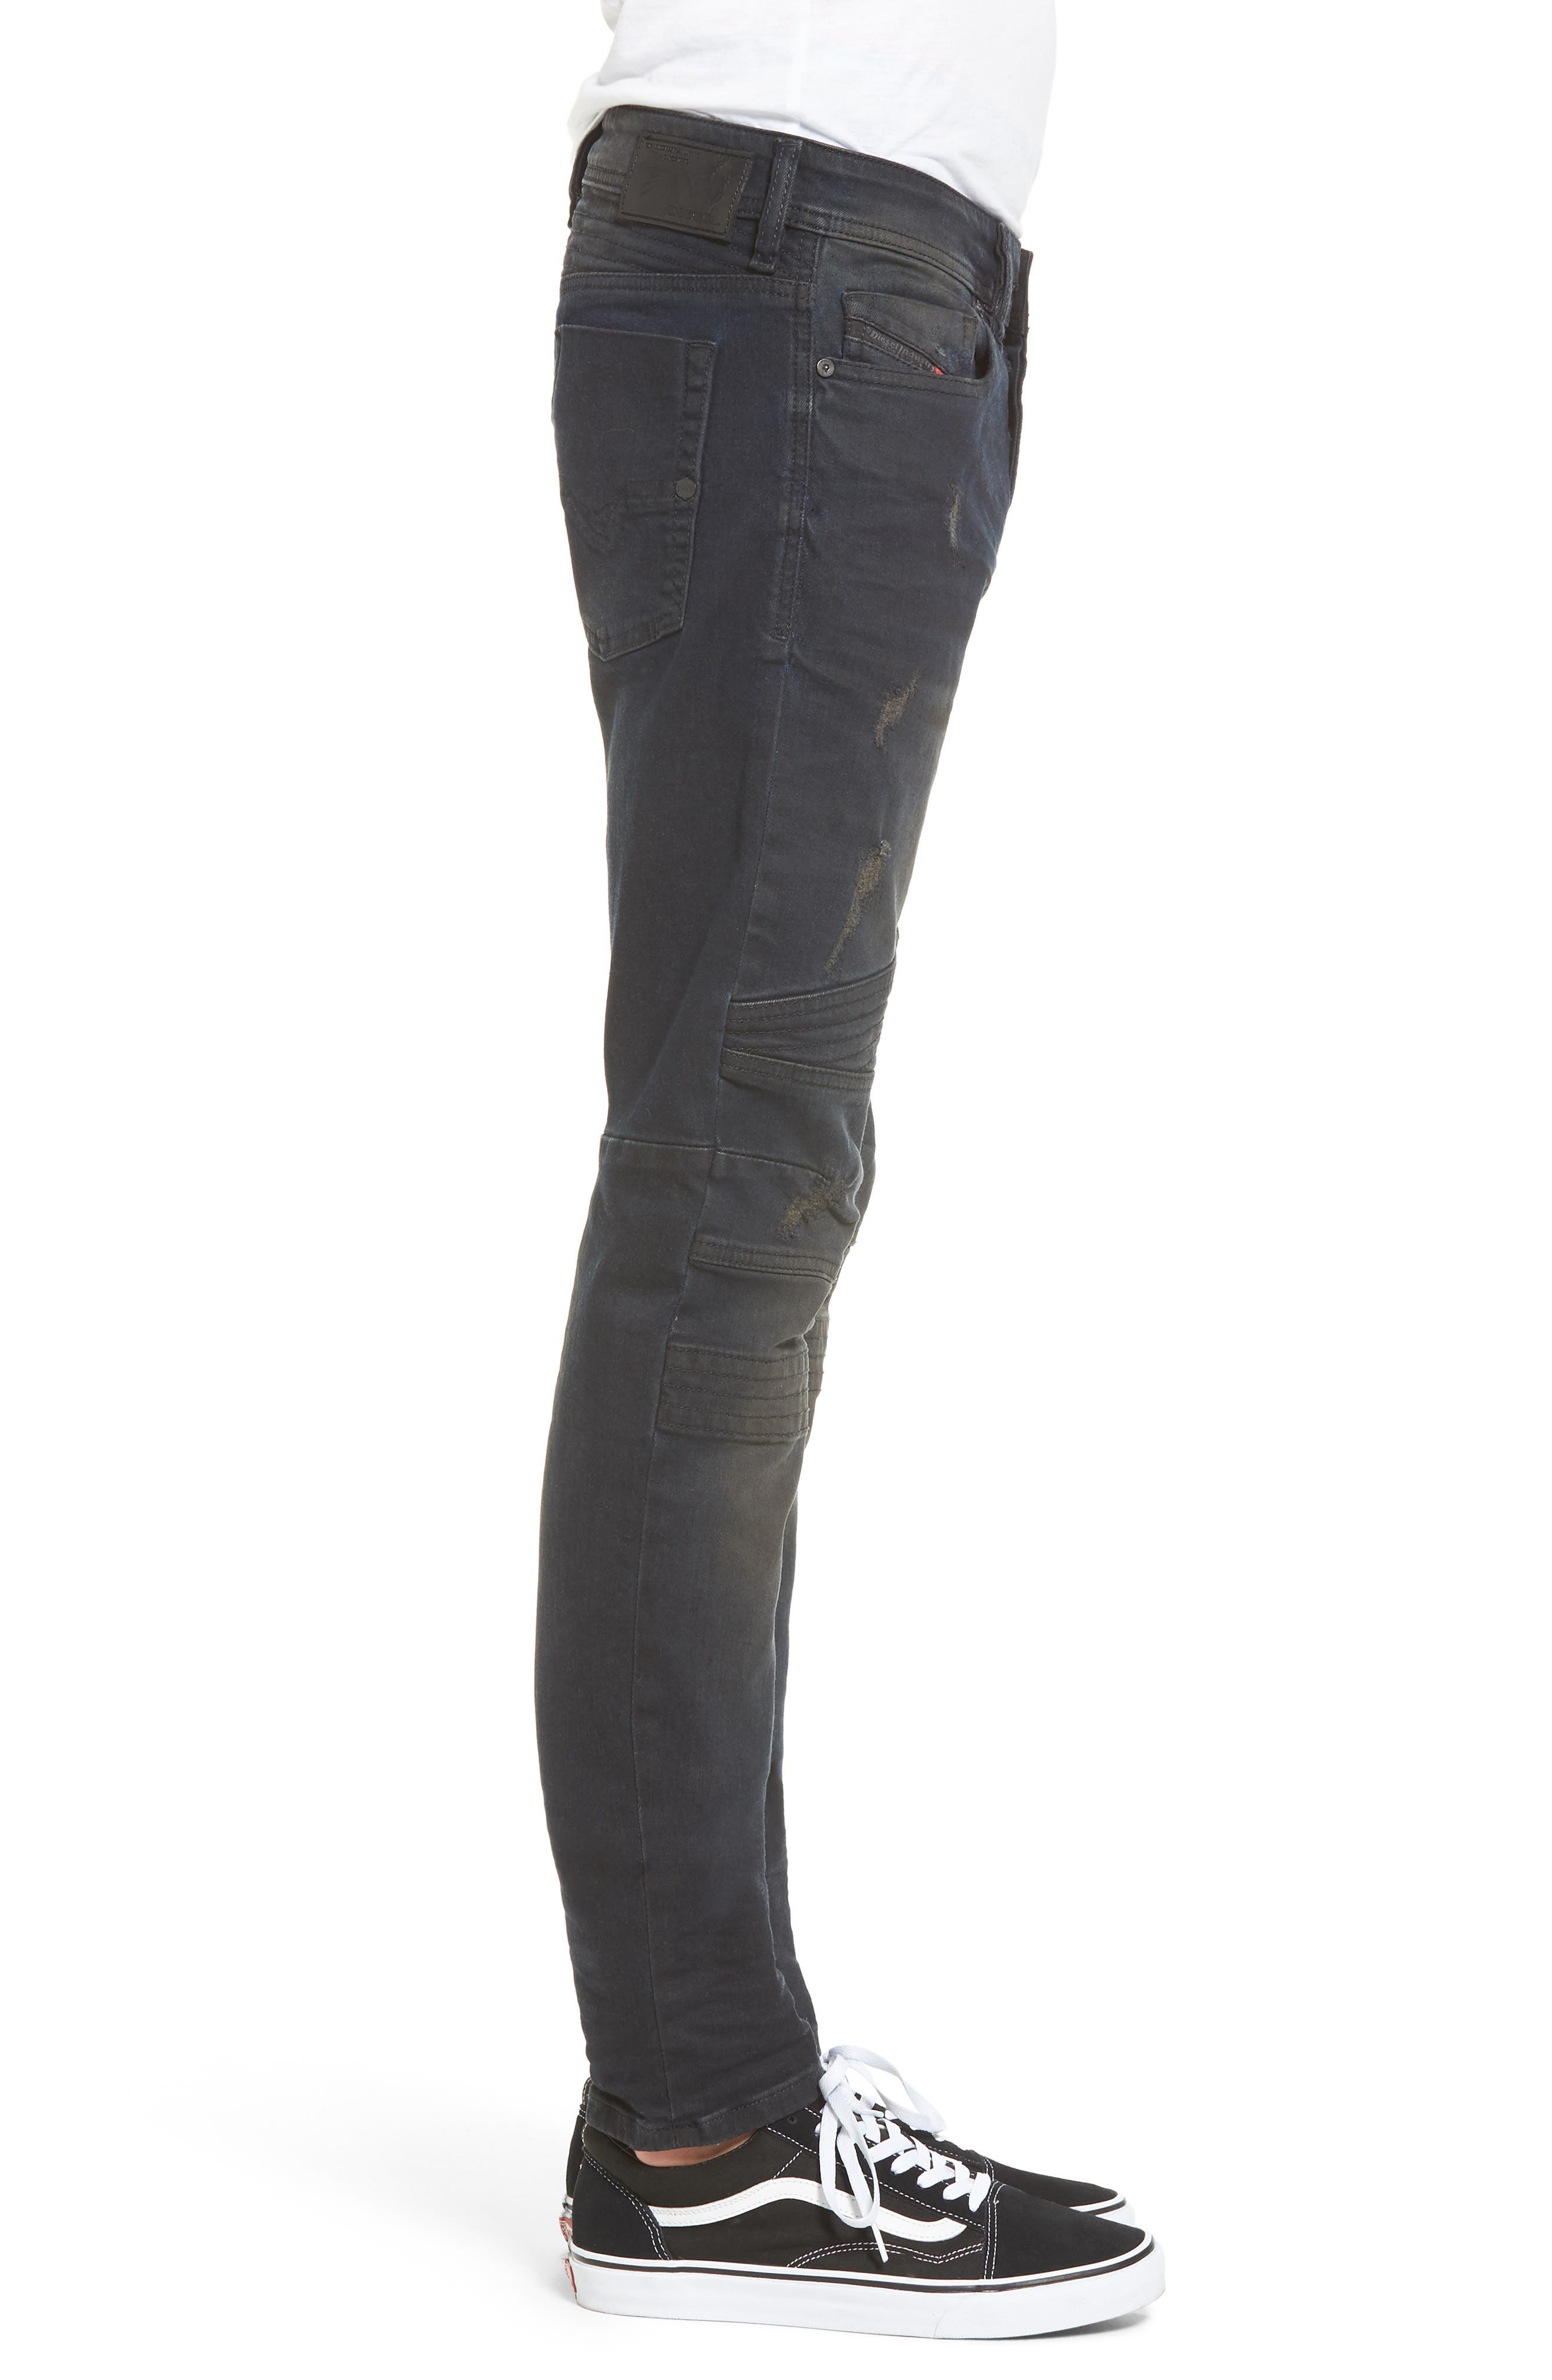 Fourk Skinny Fit Jeans,                             Alternate thumbnail 3, color,